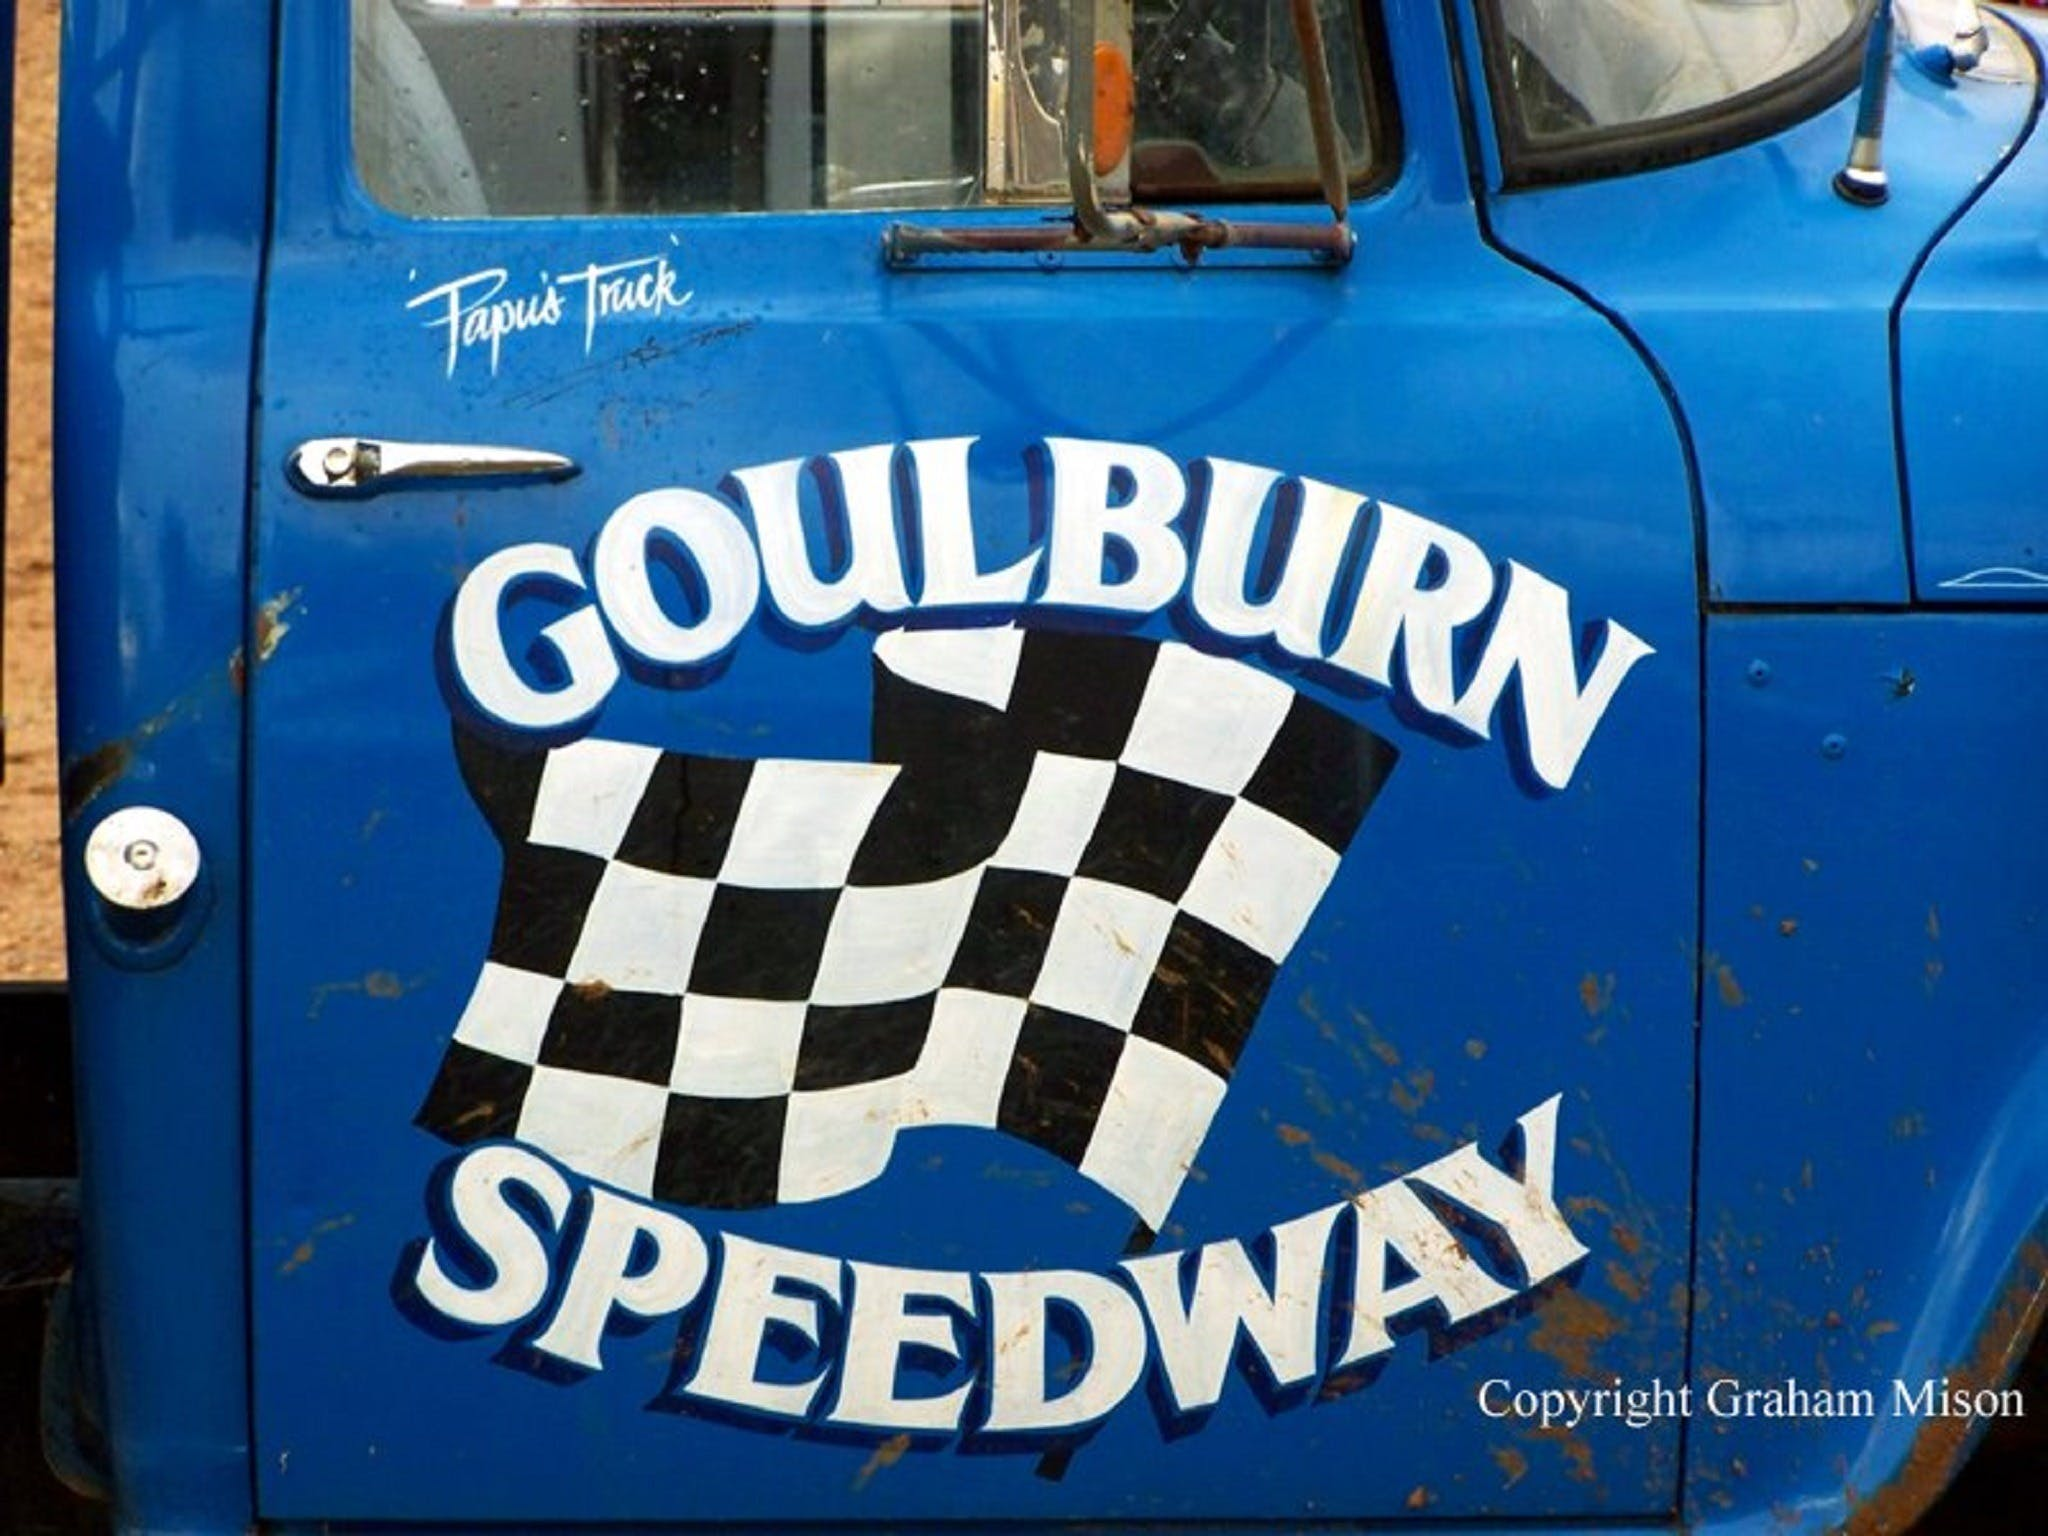 50 years of racing at Goulburn Speedway - Accommodation Mt Buller